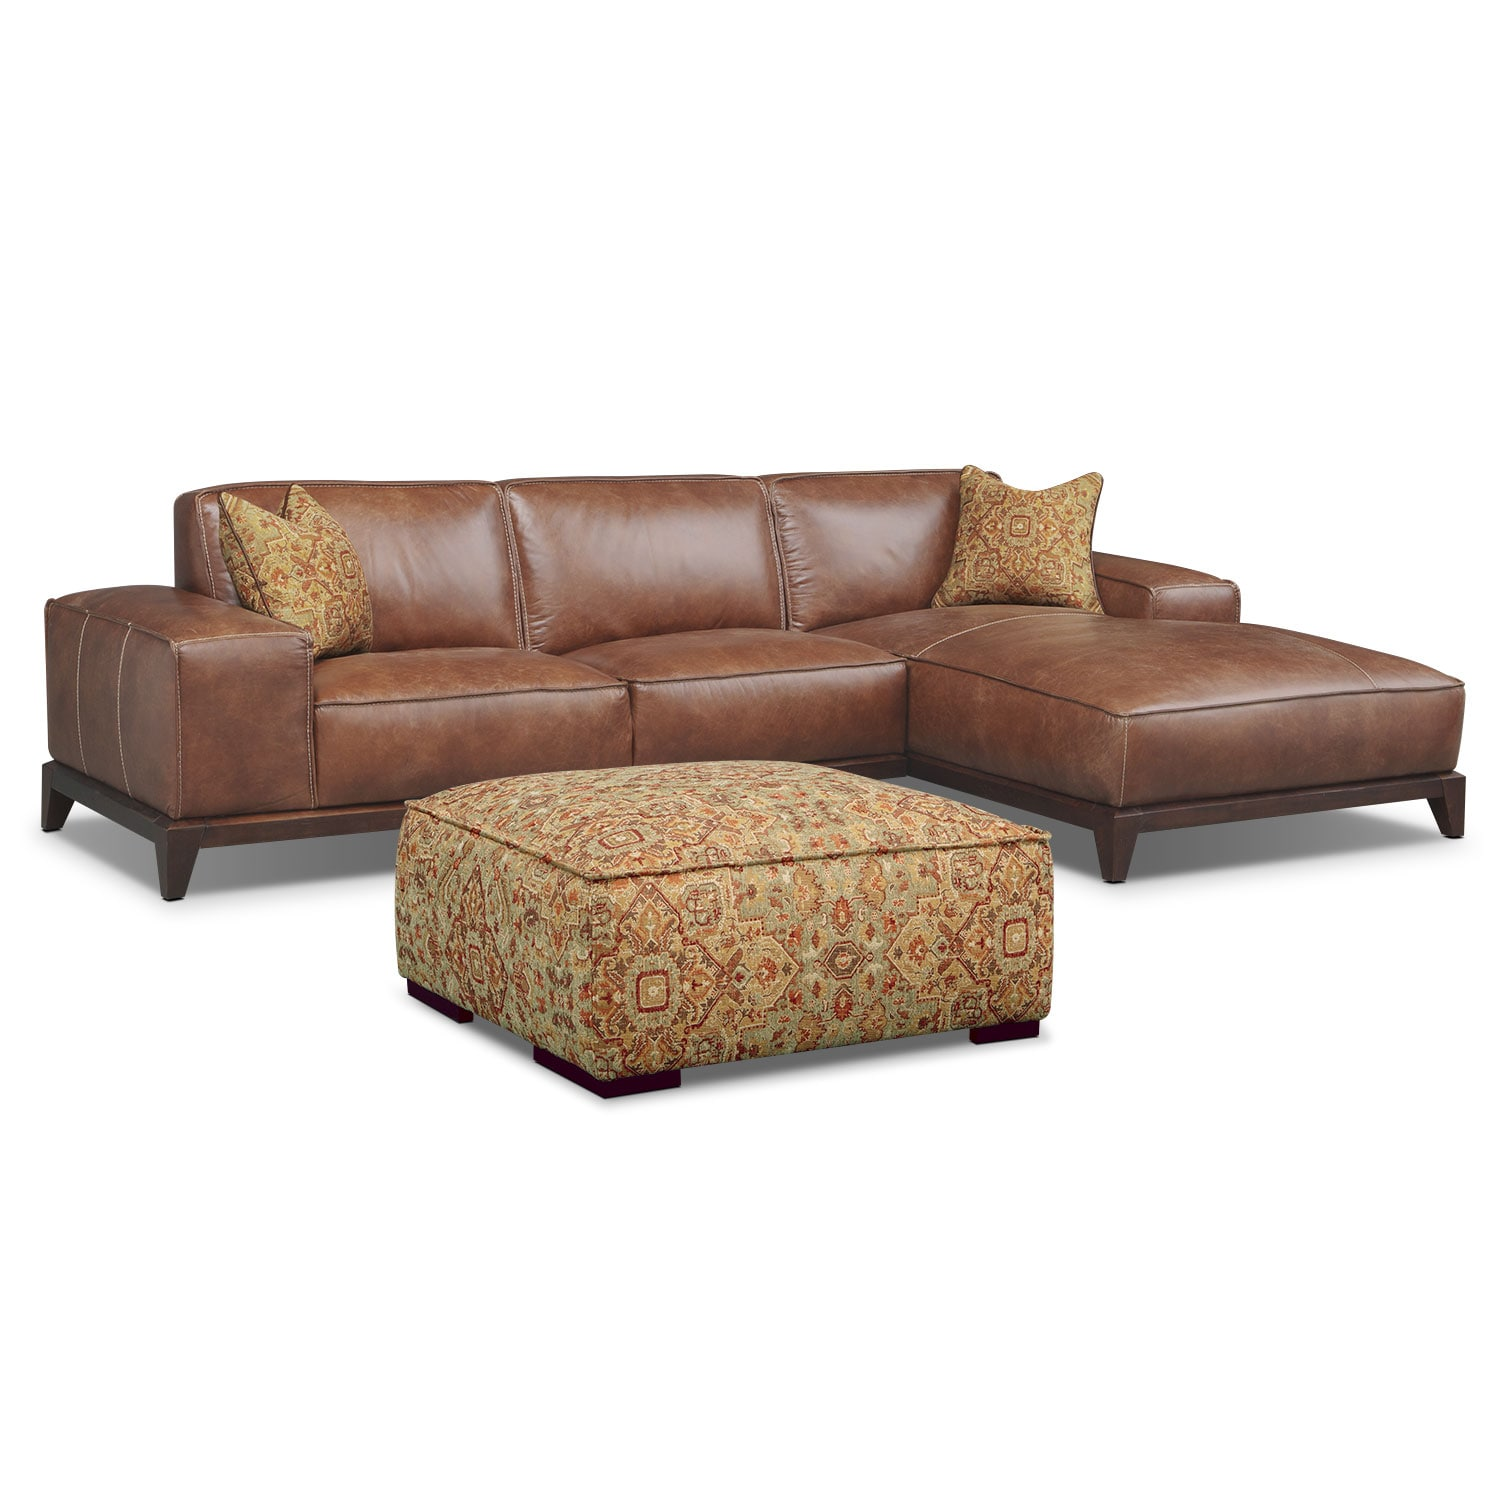 Living Room Furniture - Harrison 2 Pc. Sectional and Ottoman